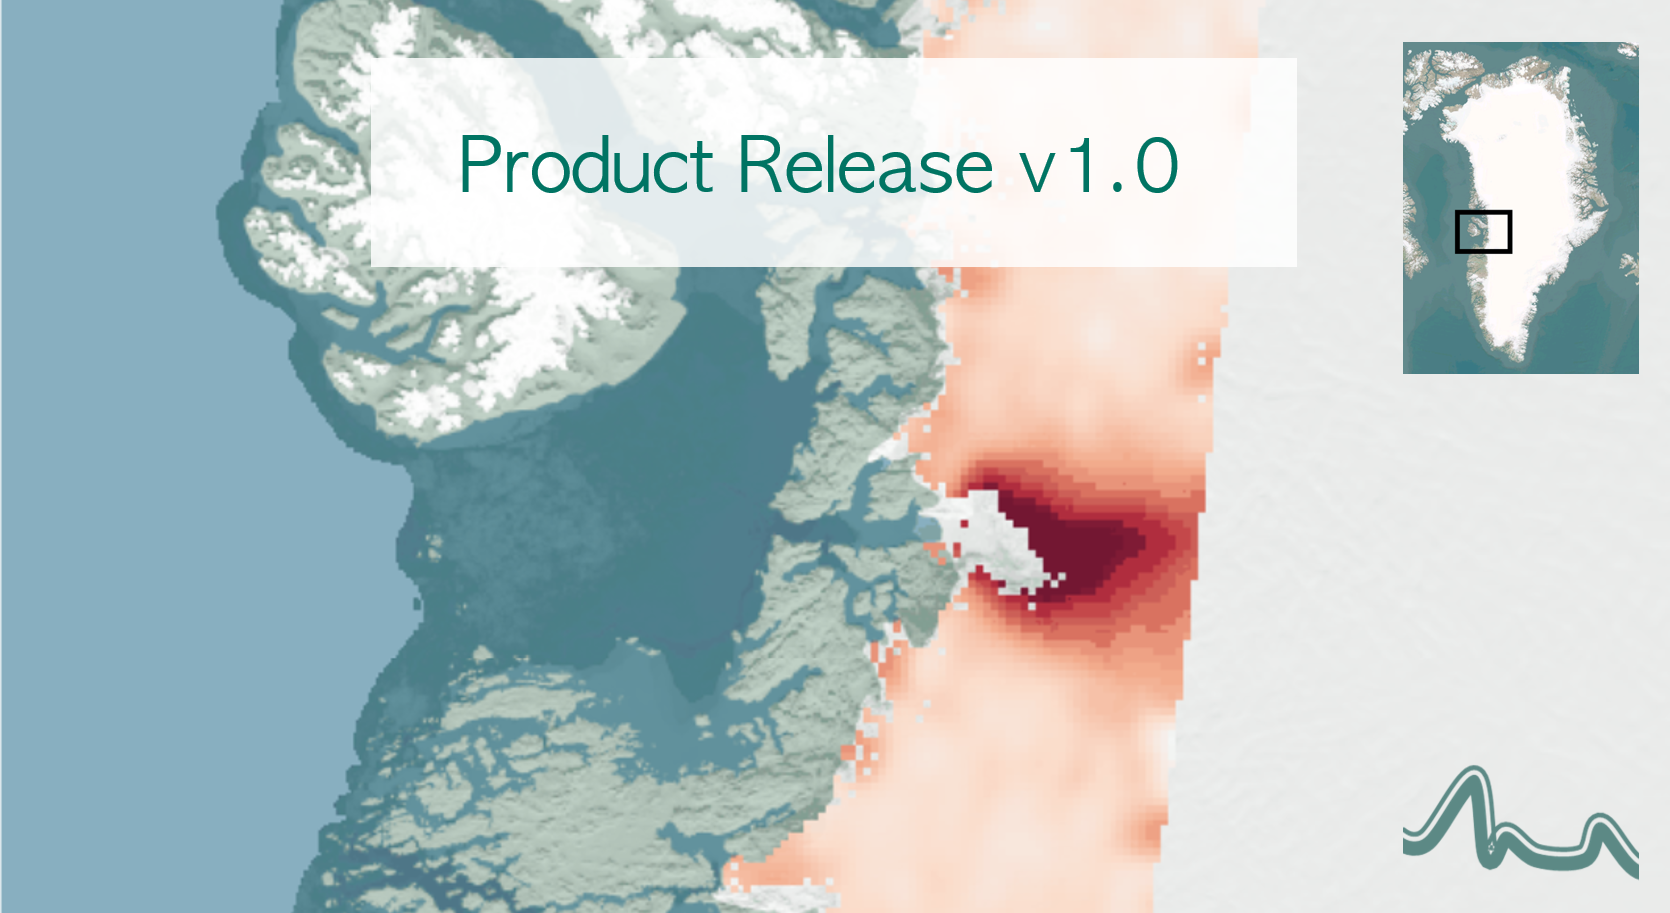 Product release v1.0: Systematic swath elevation and monthly DEMs over the Greenland Ice Sheet margin from CryoSat-2